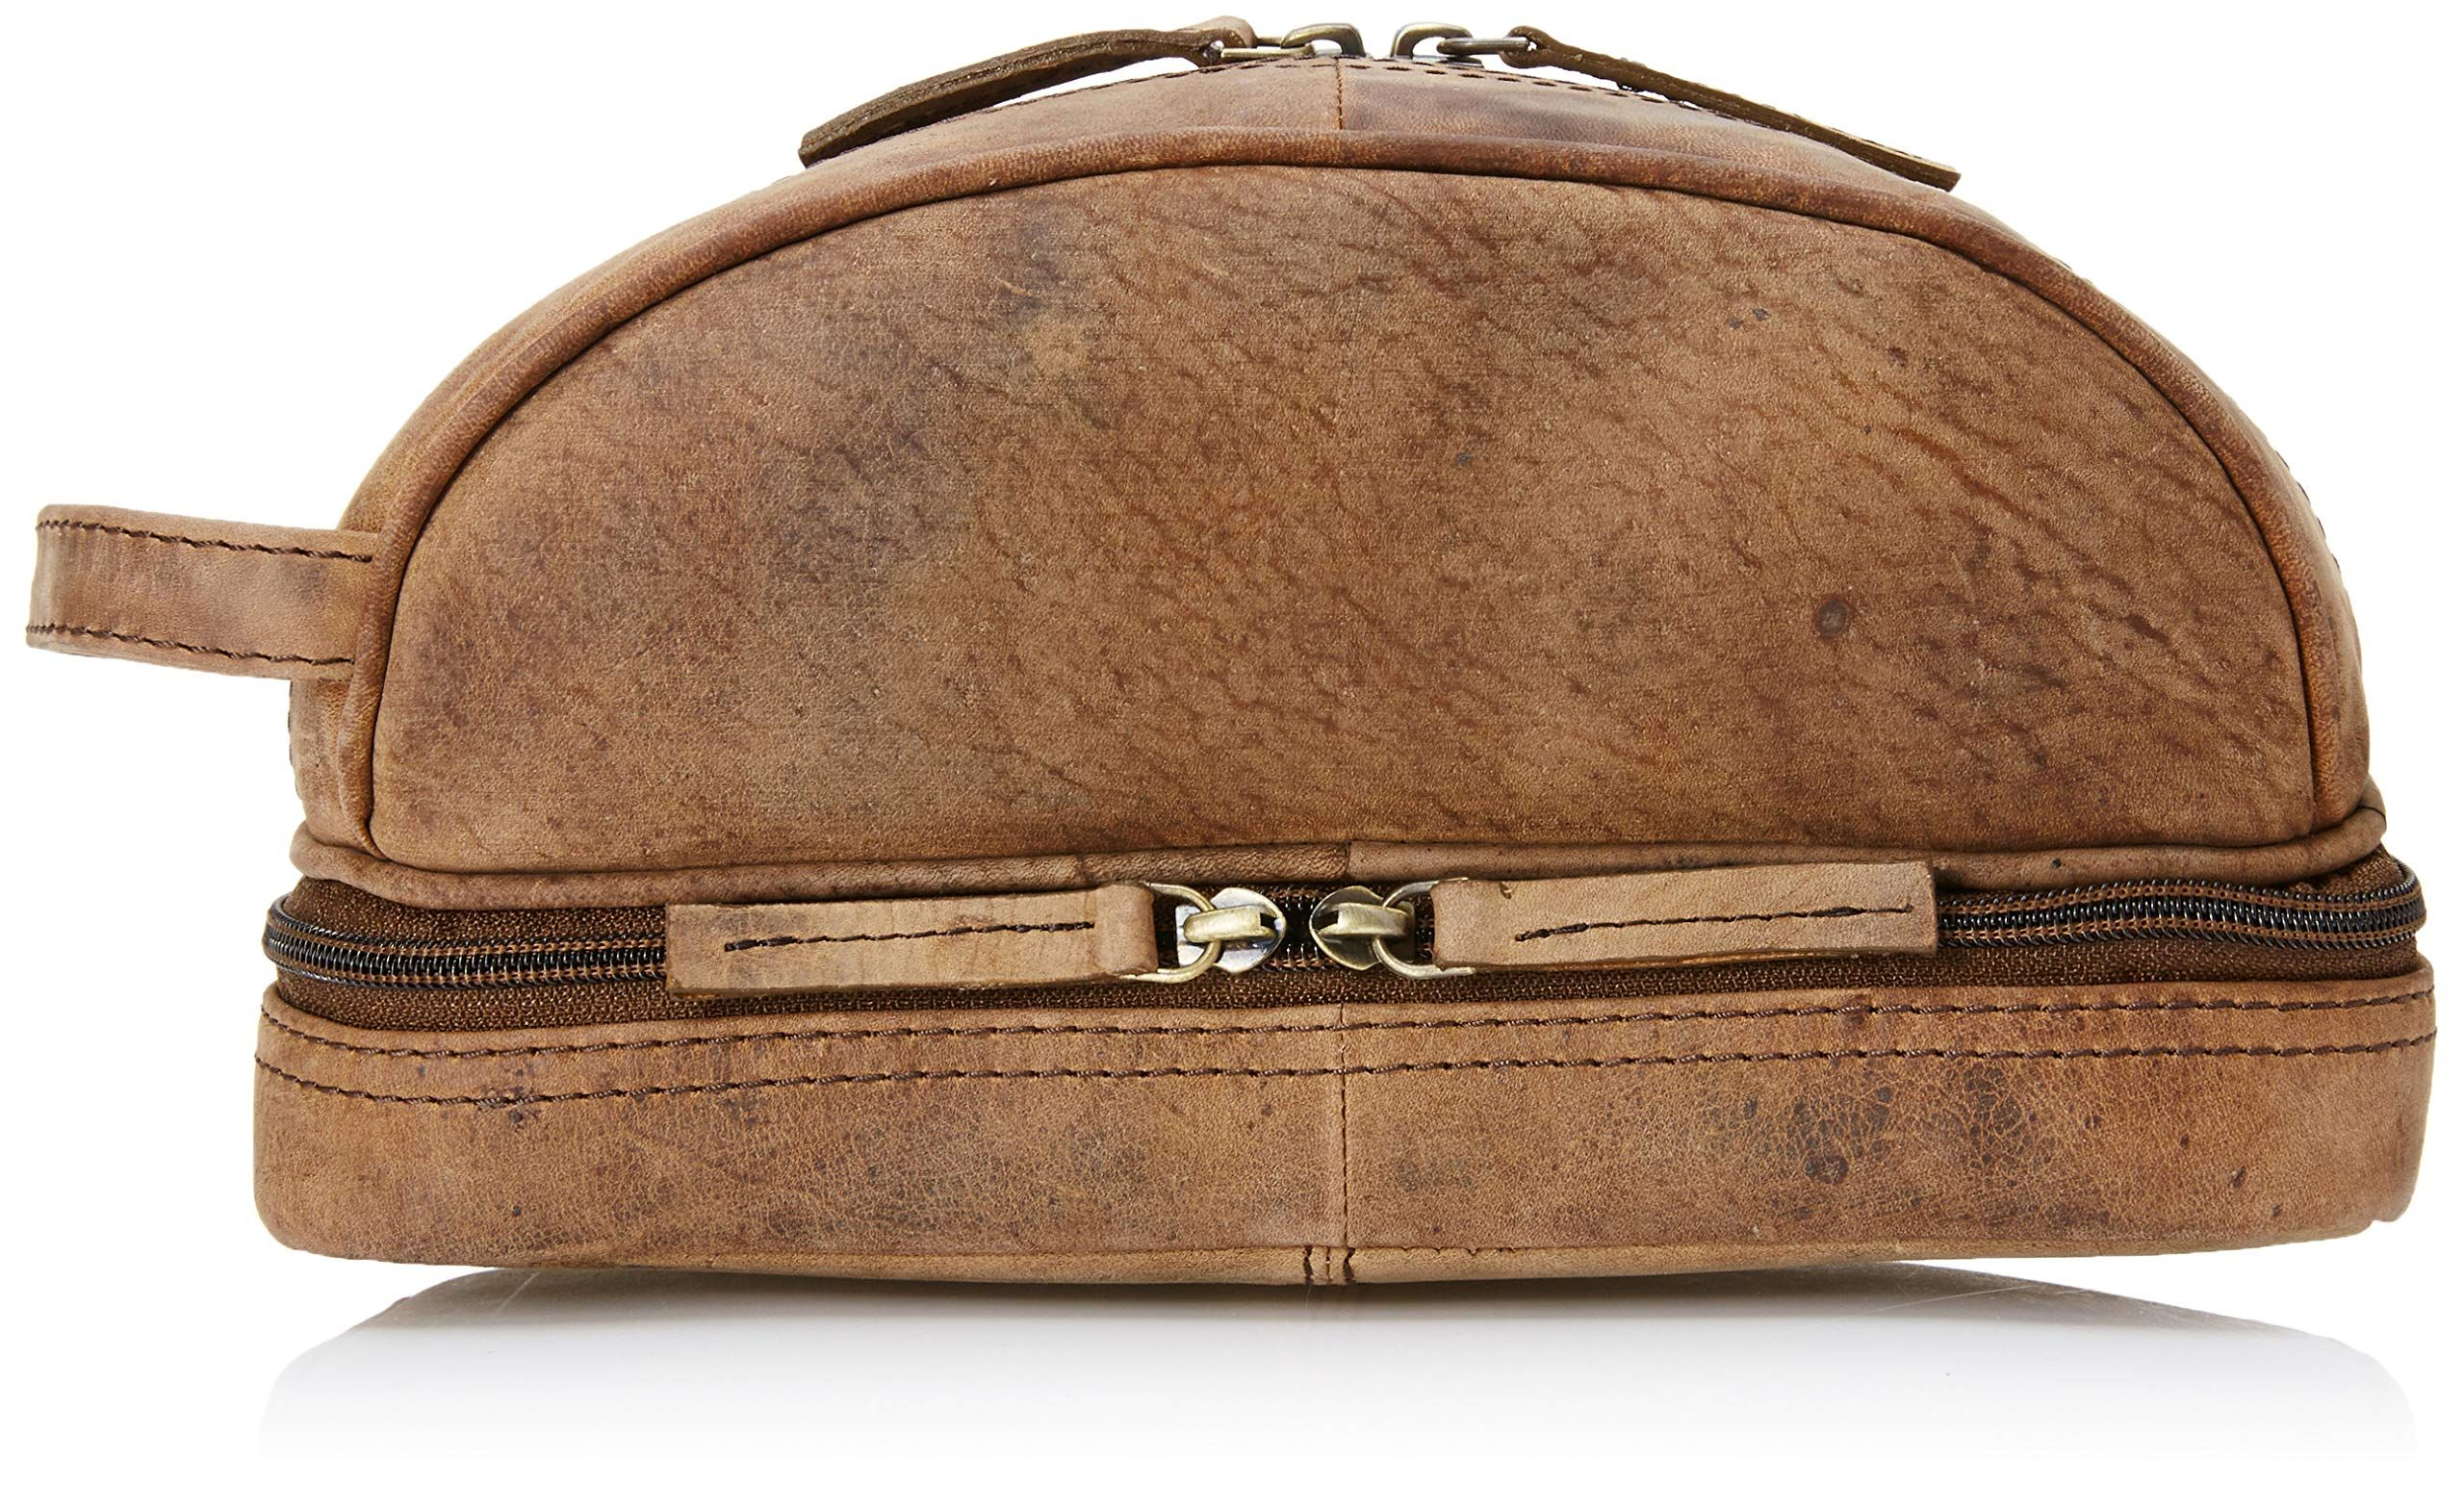 Genuine Buffalo Leather Unisex Toiletry Bag Travel Dopp Kit By Vintage Couture